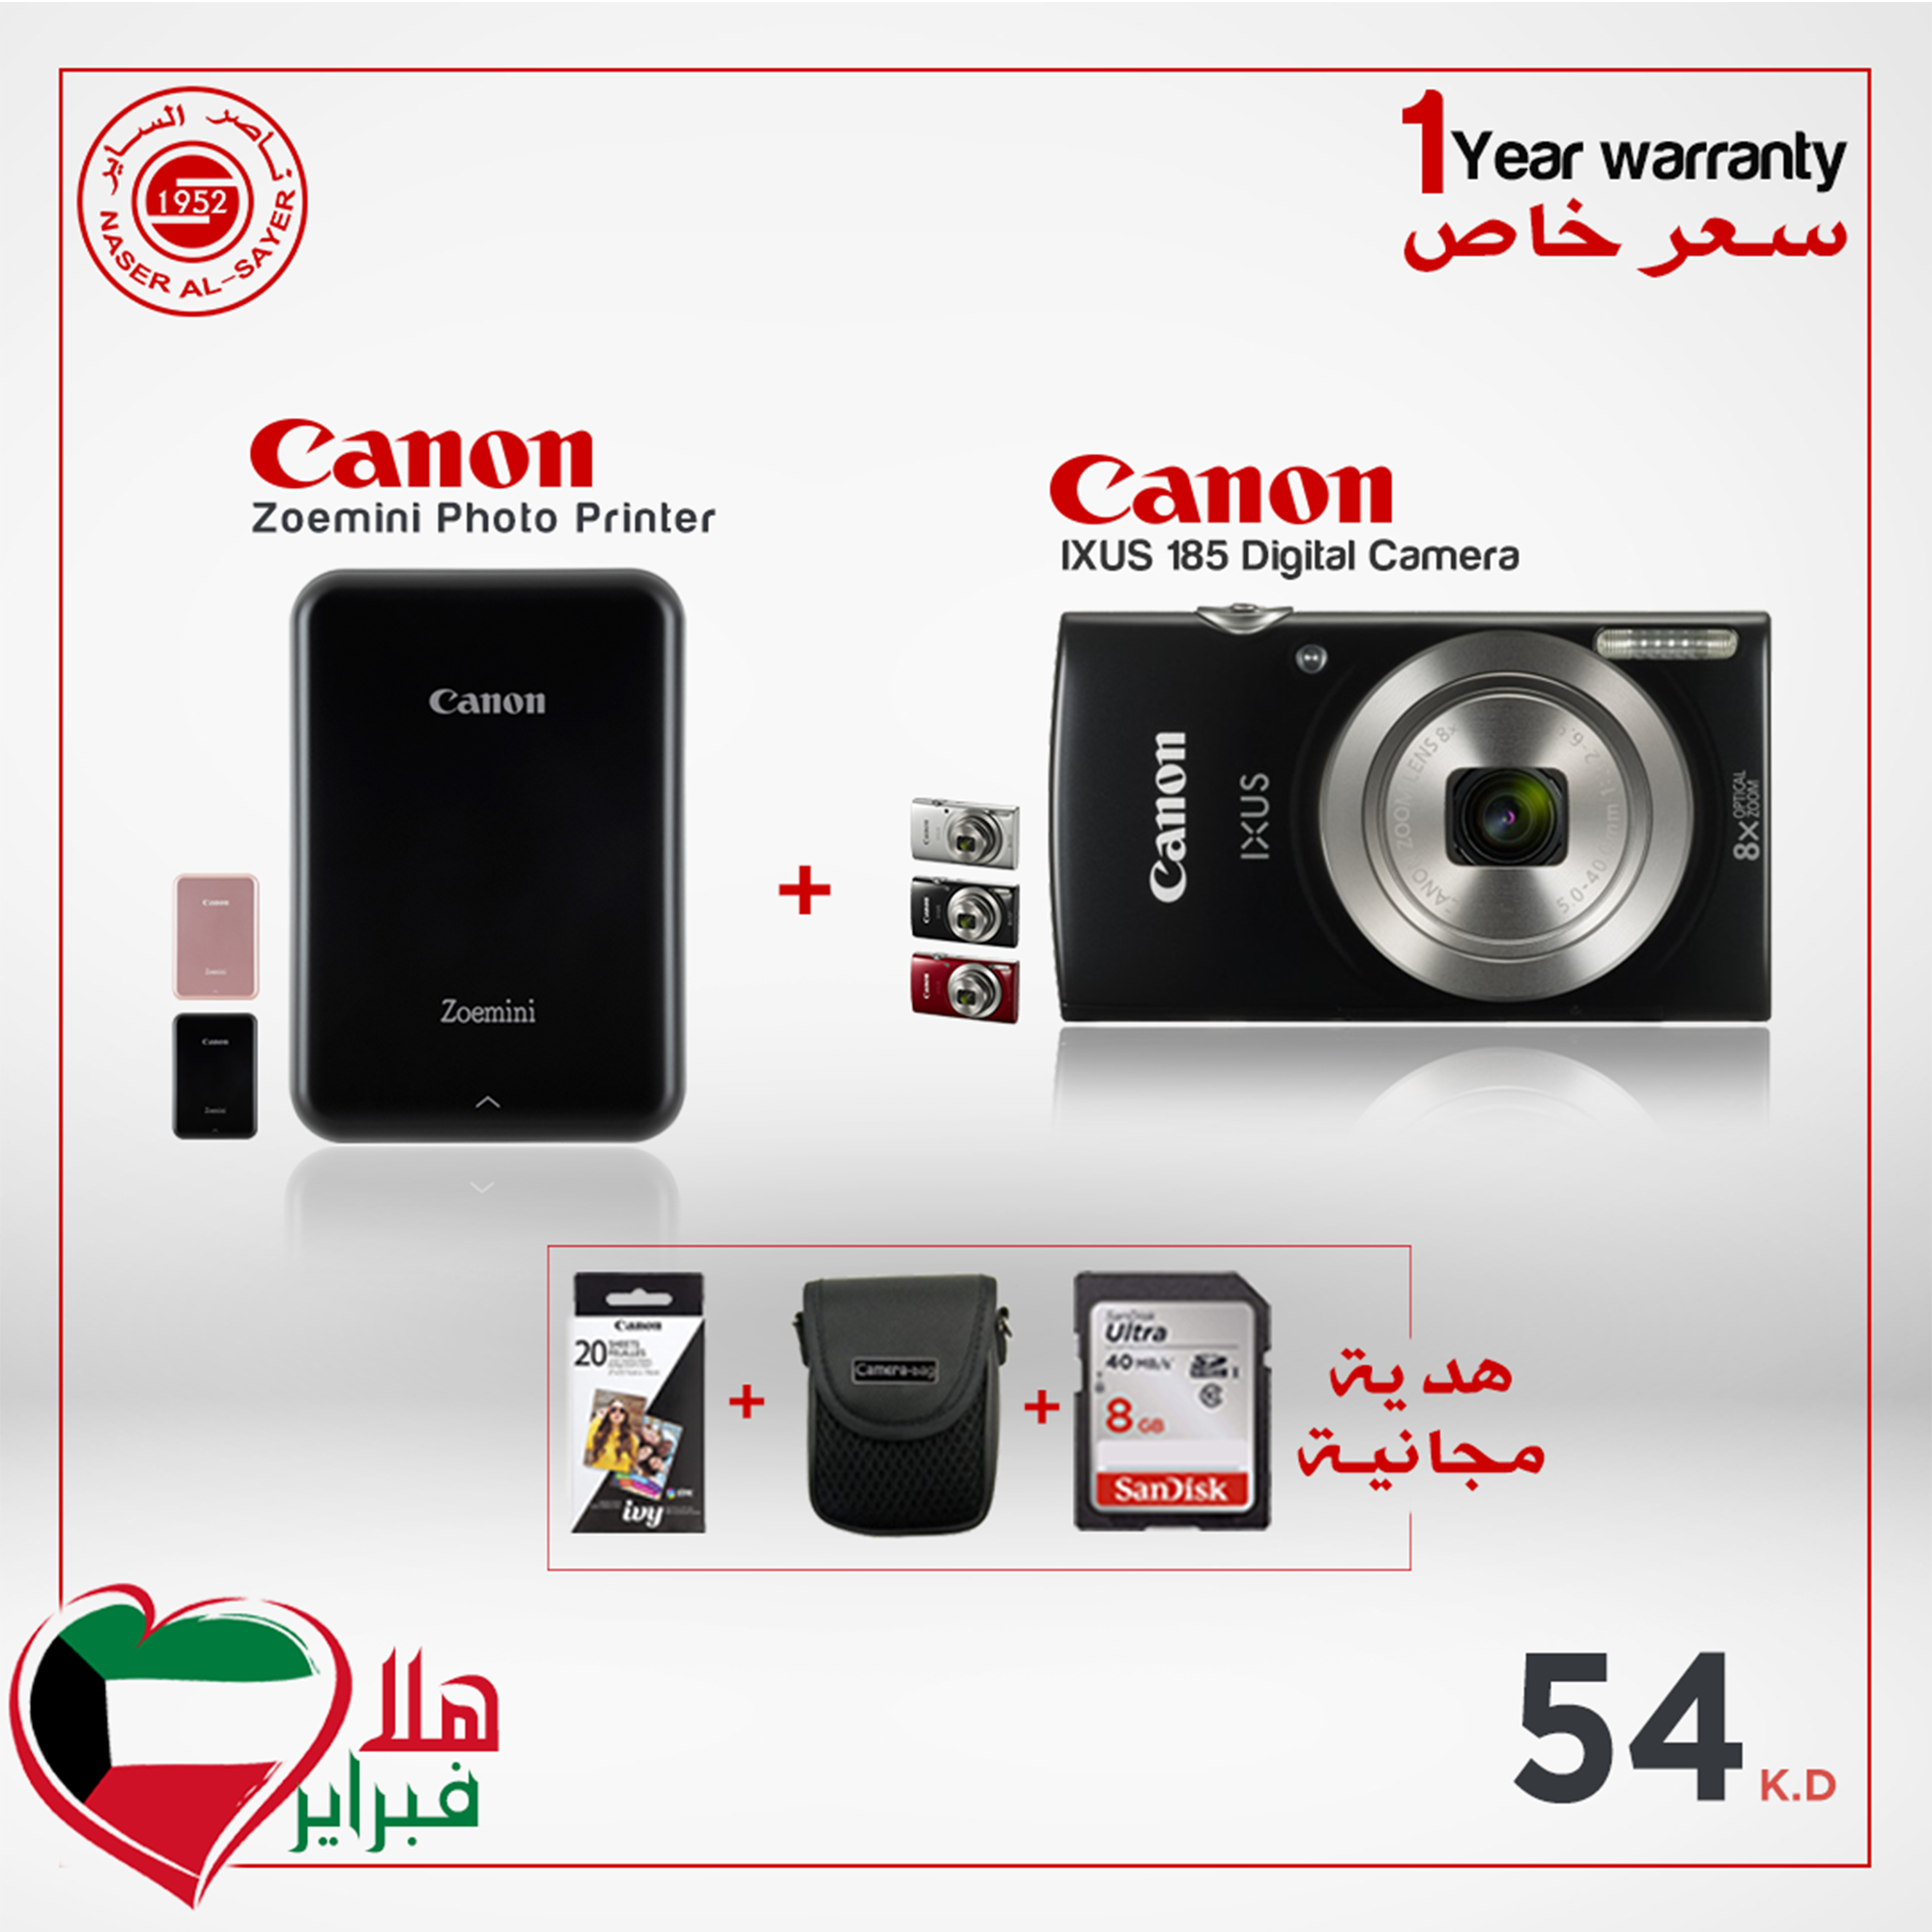 CANON IXUS 185 BLACK With  FREE BAG & MEMORY 8 GB  + Canon Zoemini Printer With free Paper Packet